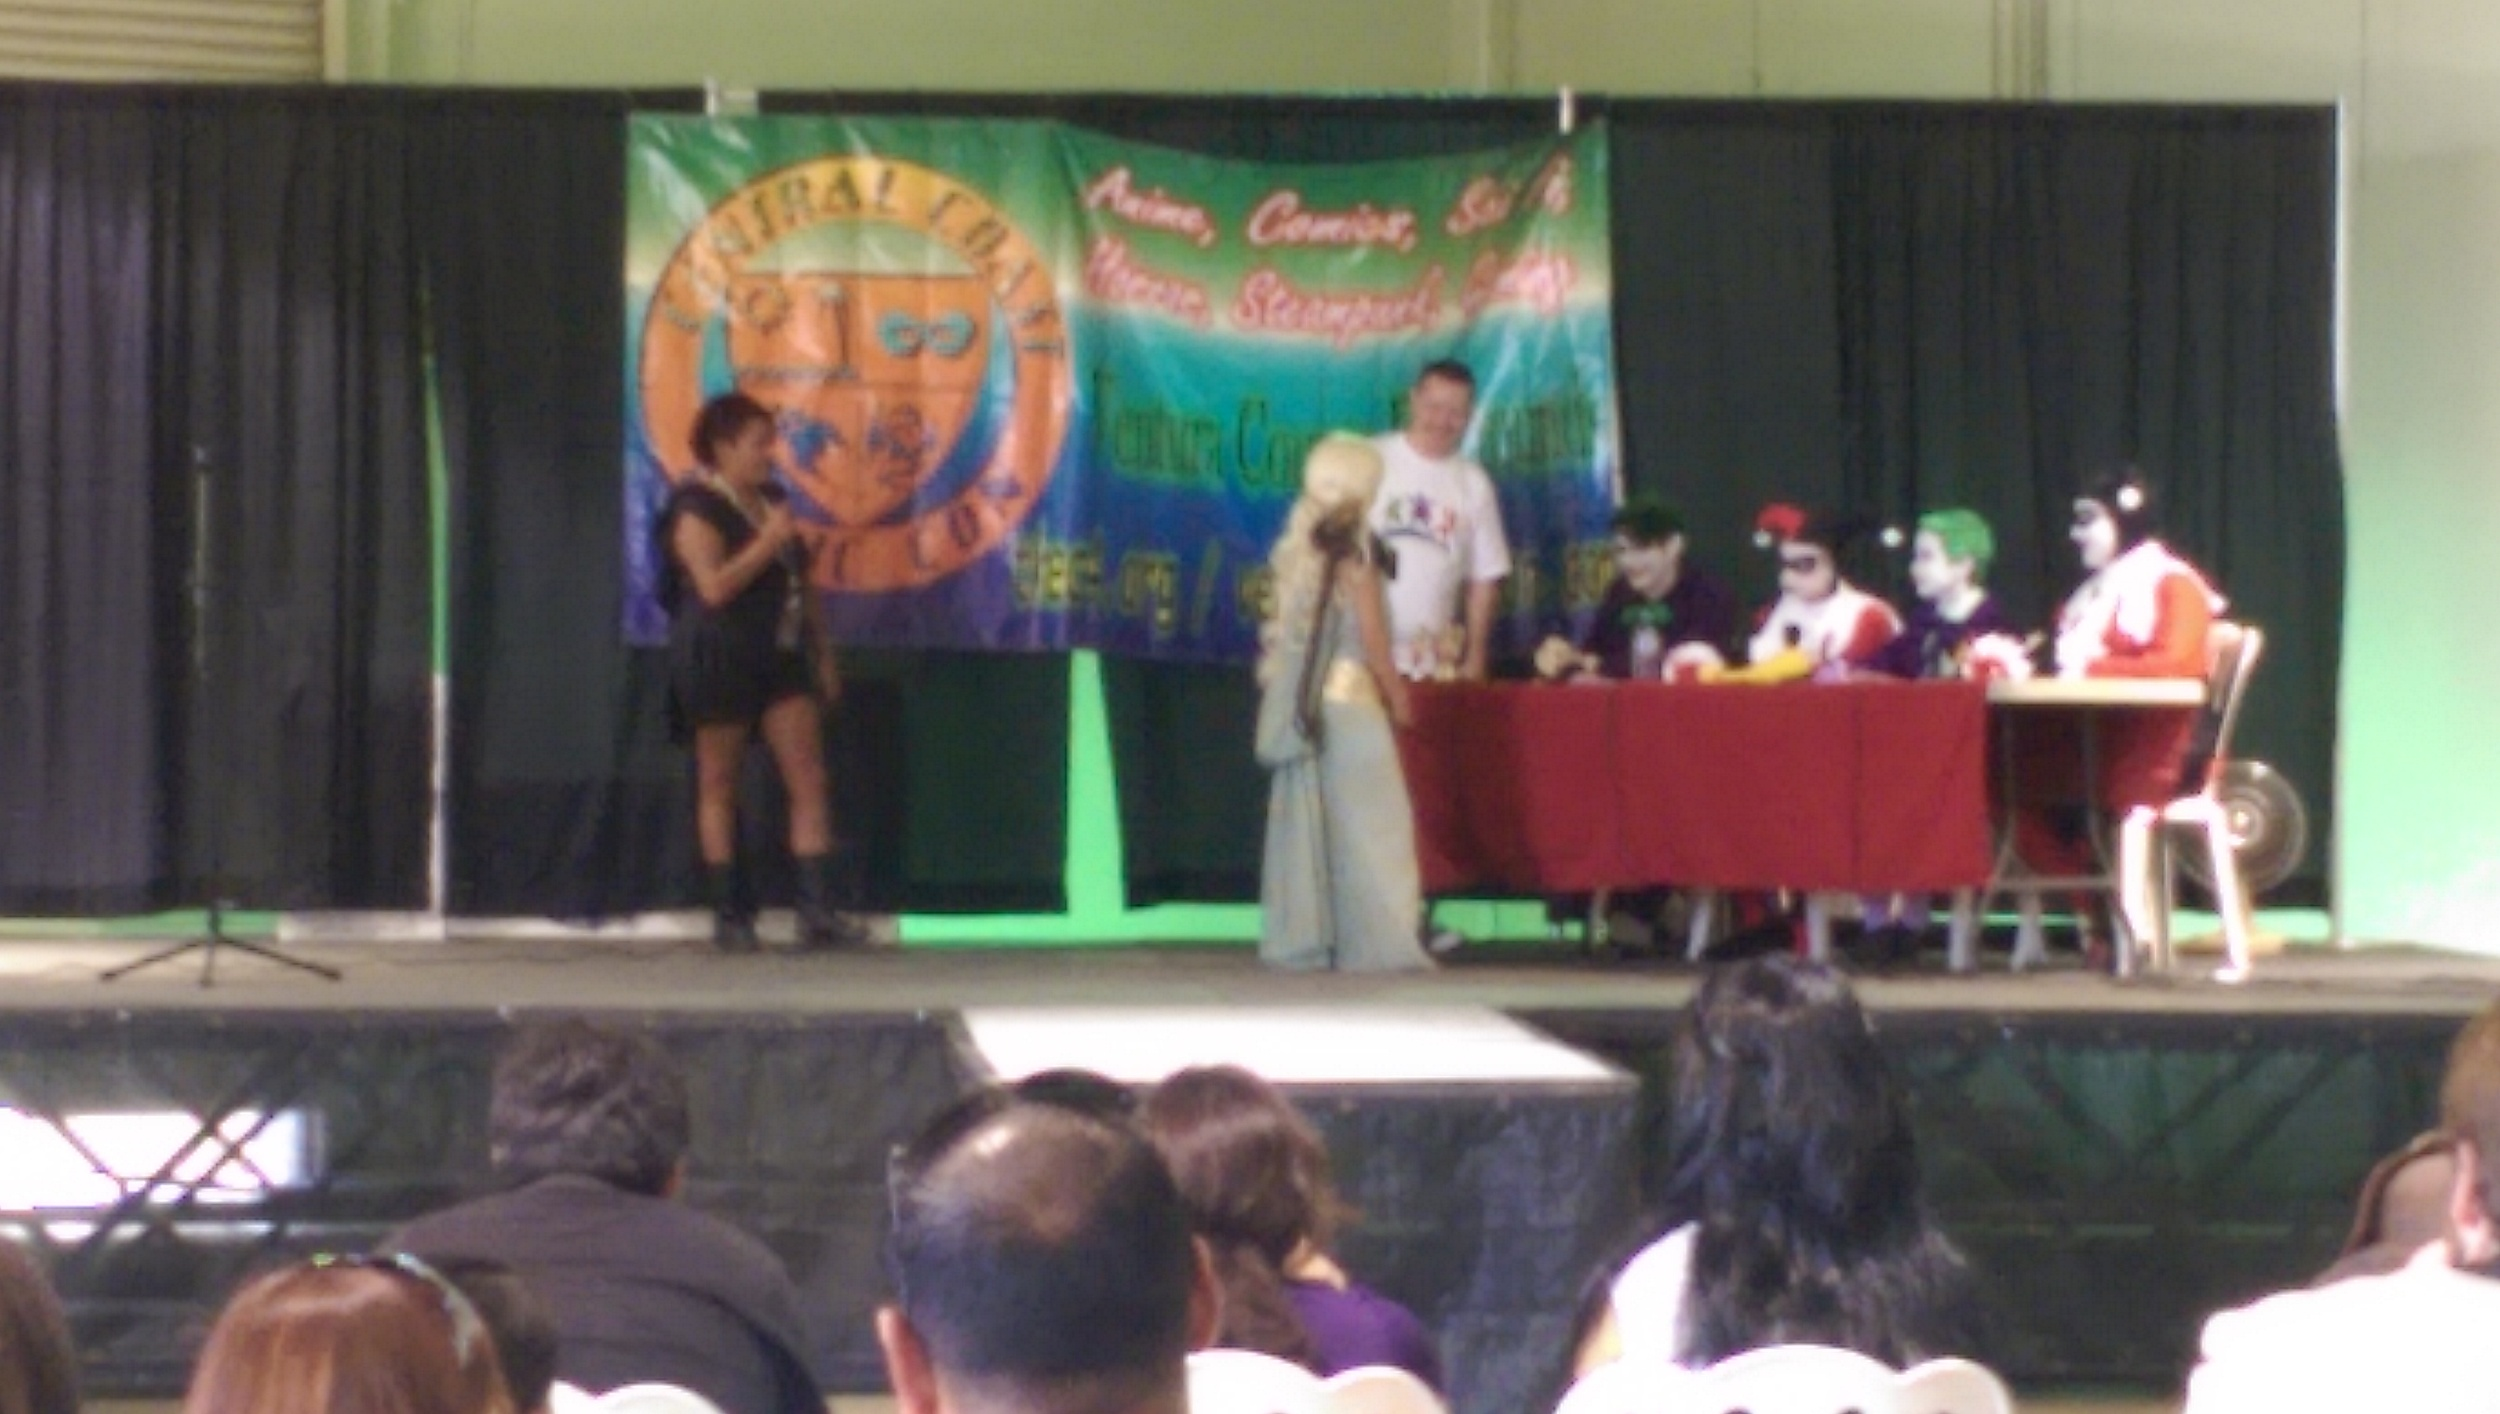 A tiny Daenerys meeting with the judges in the kids cosplay competition